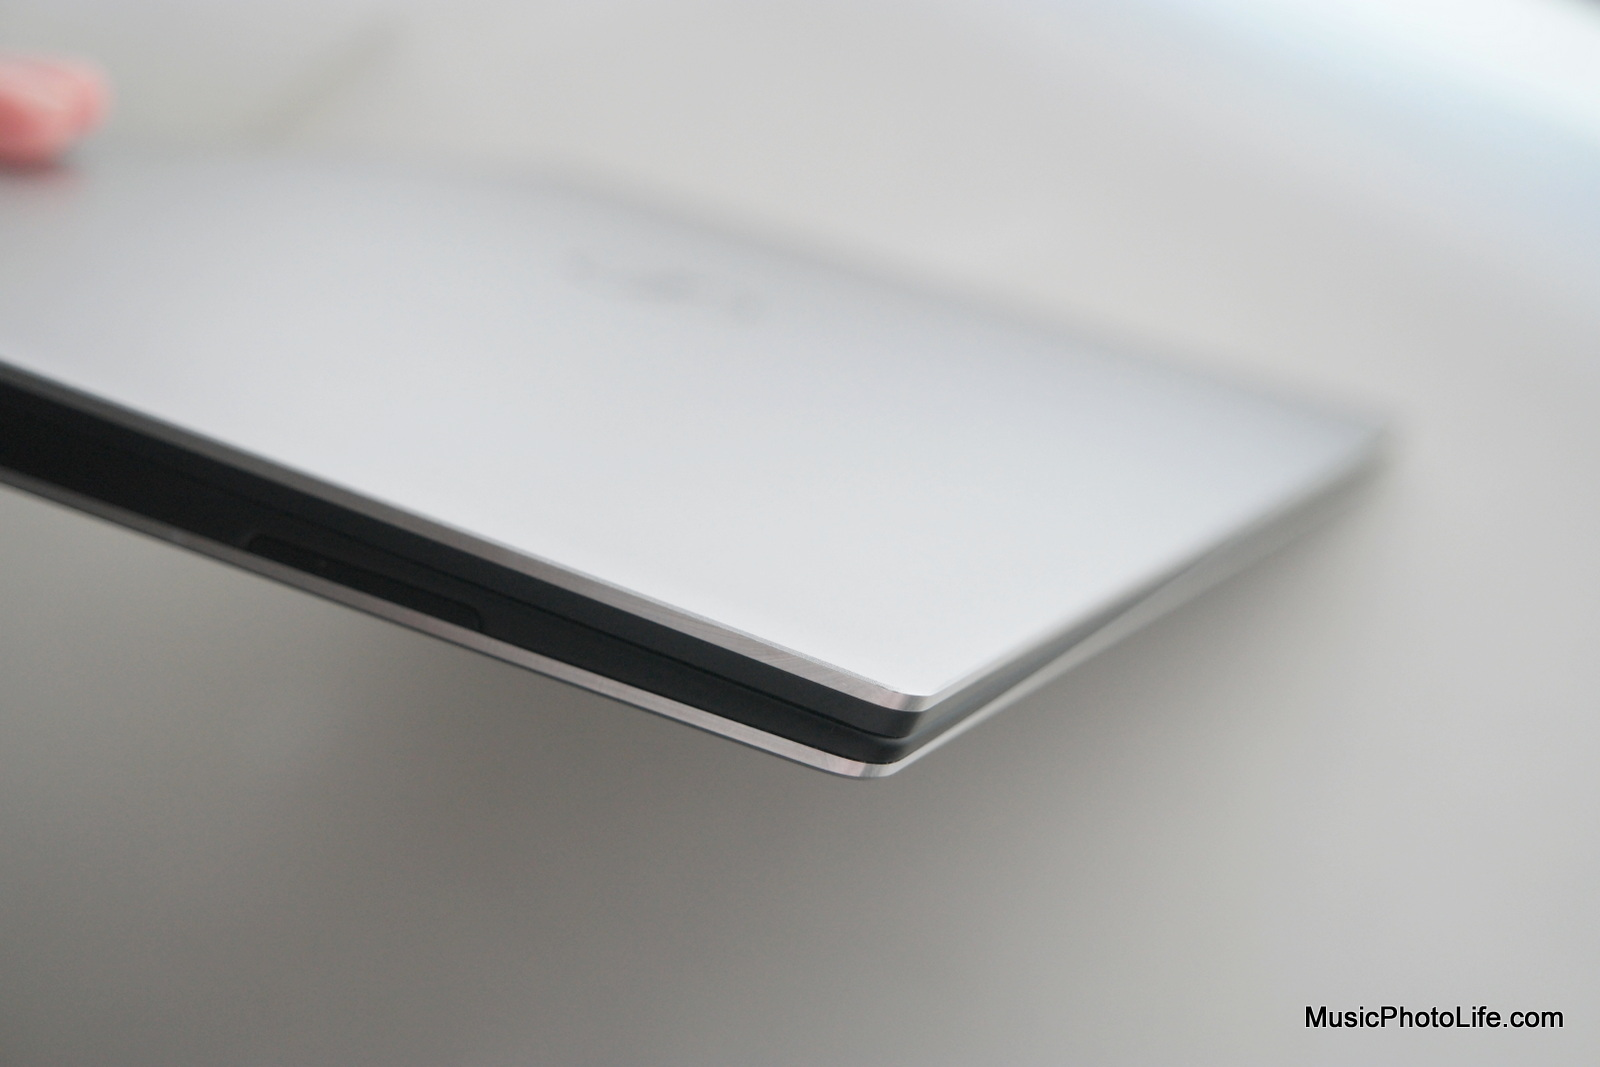 Dell XPS 13 (2016) small speaker grille